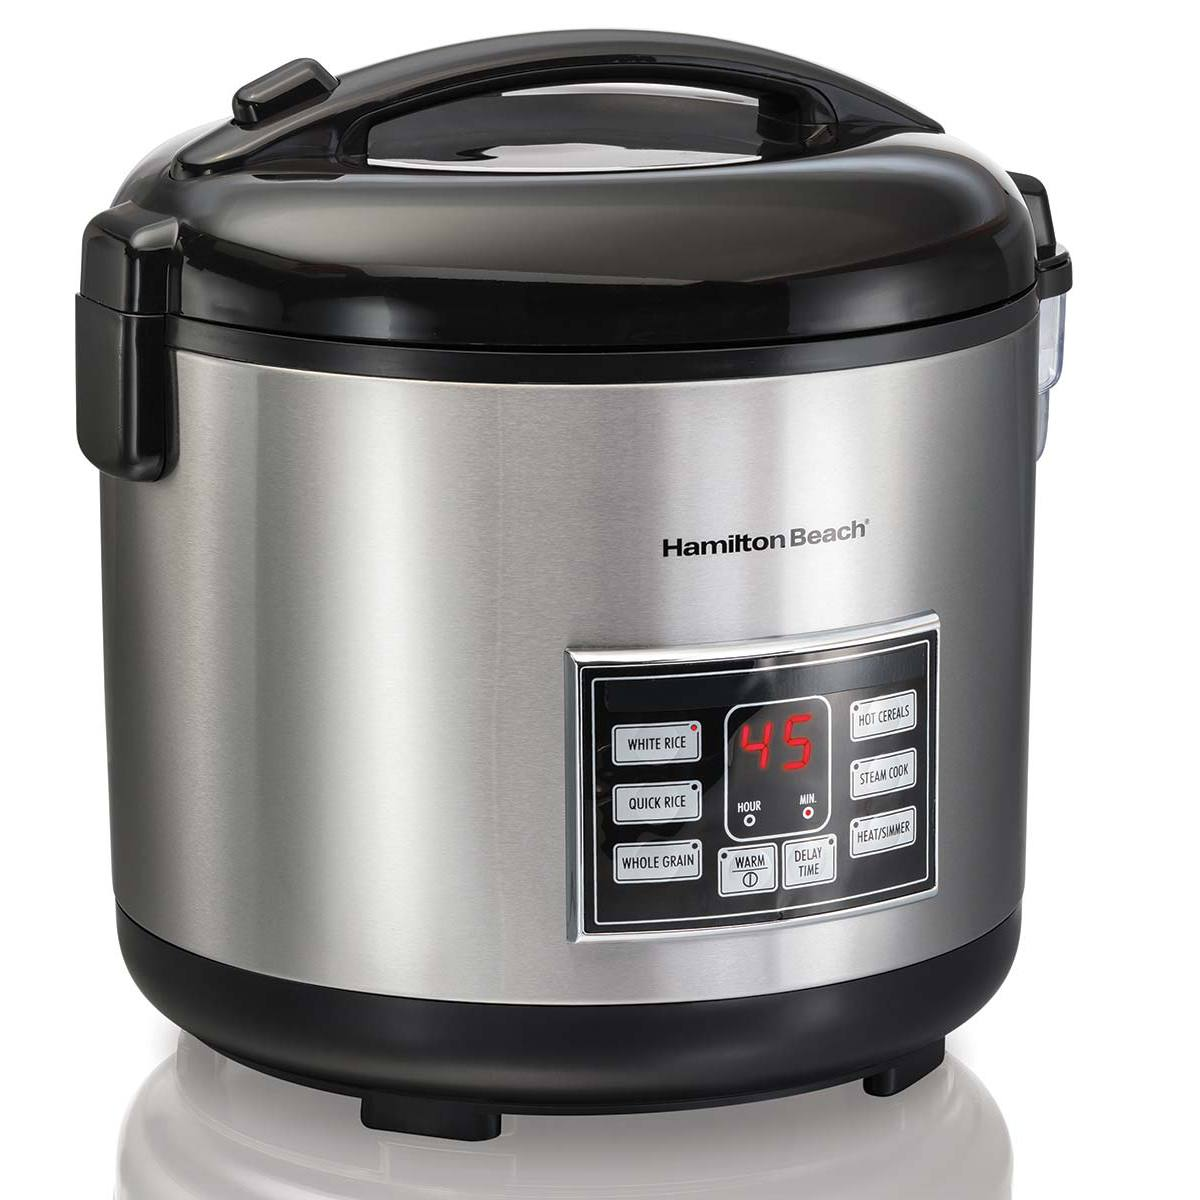 hamilton beach rice hot cereal cooker 20 cup 37543. Black Bedroom Furniture Sets. Home Design Ideas